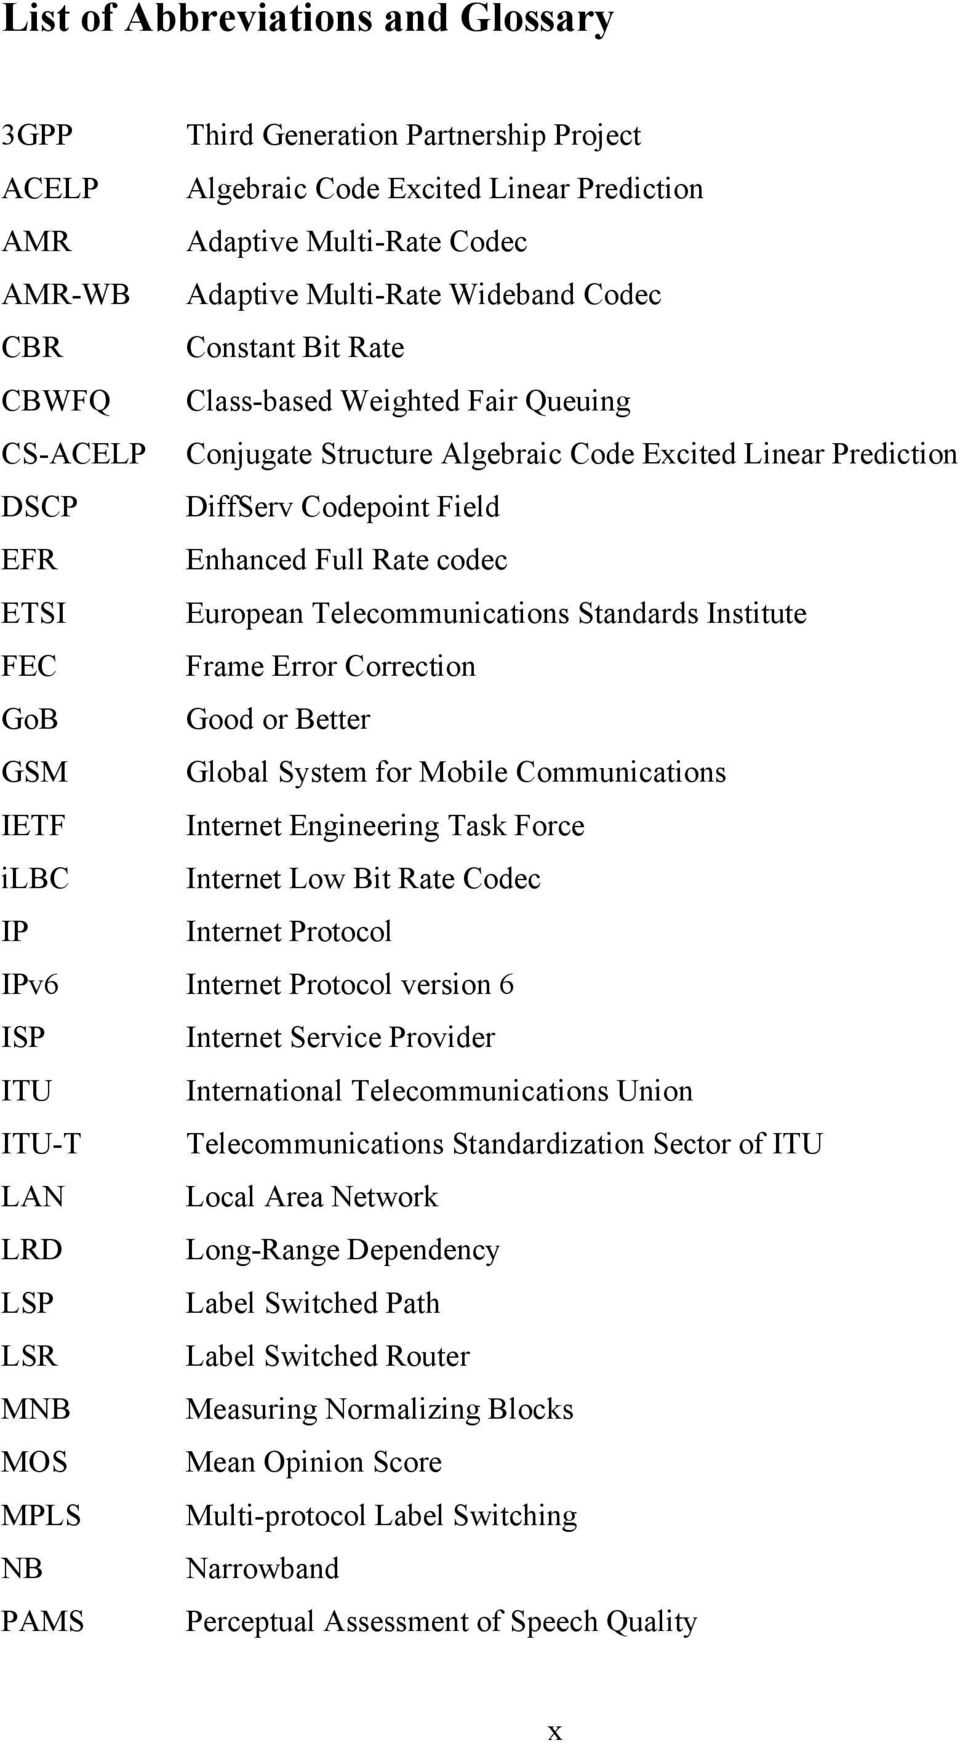 ADAPTIVE SPEECH QUALITY IN VOICE-OVER-IP COMMUNICATIONS  by